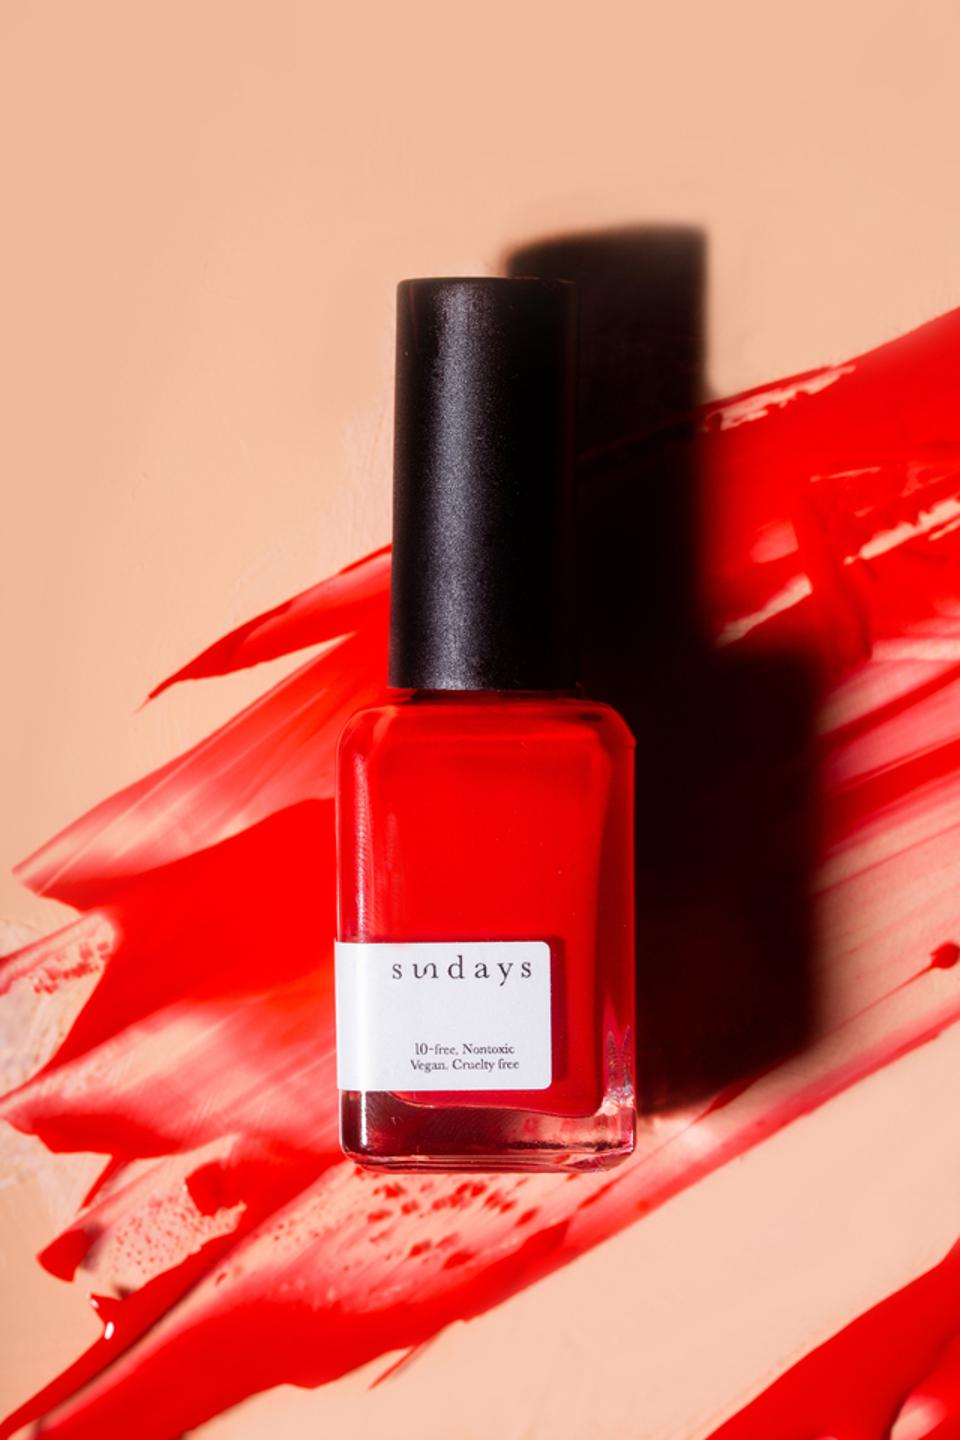 One of the 50 striking colors for sundays' vegan, cruelty-free nail polish.